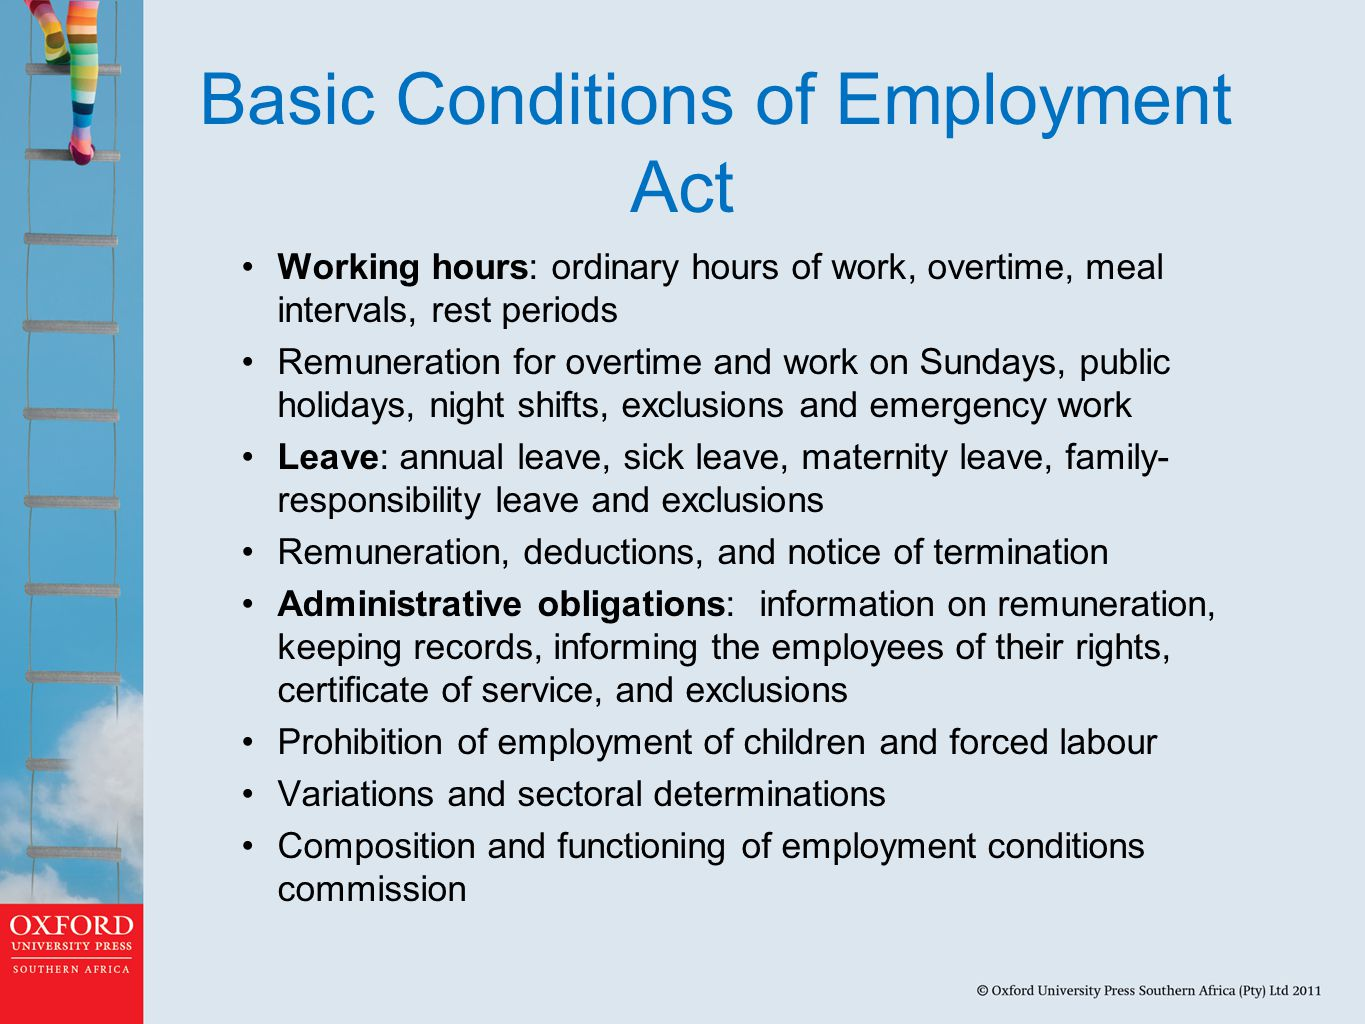 Basic Conditions of Employment Act Working hours: ordinary hours of work, overtime, meal intervals, rest periods Remuneration for overtime and work on Sundays, public holidays, night shifts, exclusions and emergency work Leave: annual leave, sick leave, maternity leave, family- responsibility leave and exclusions Remuneration, deductions, and notice of termination Administrative obligations: information on remuneration, keeping records, informing the employees of their rights, certificate of service, and exclusions Prohibition of employment of children and forced labour Variations and sectoral determinations Composition and functioning of employment conditions commission